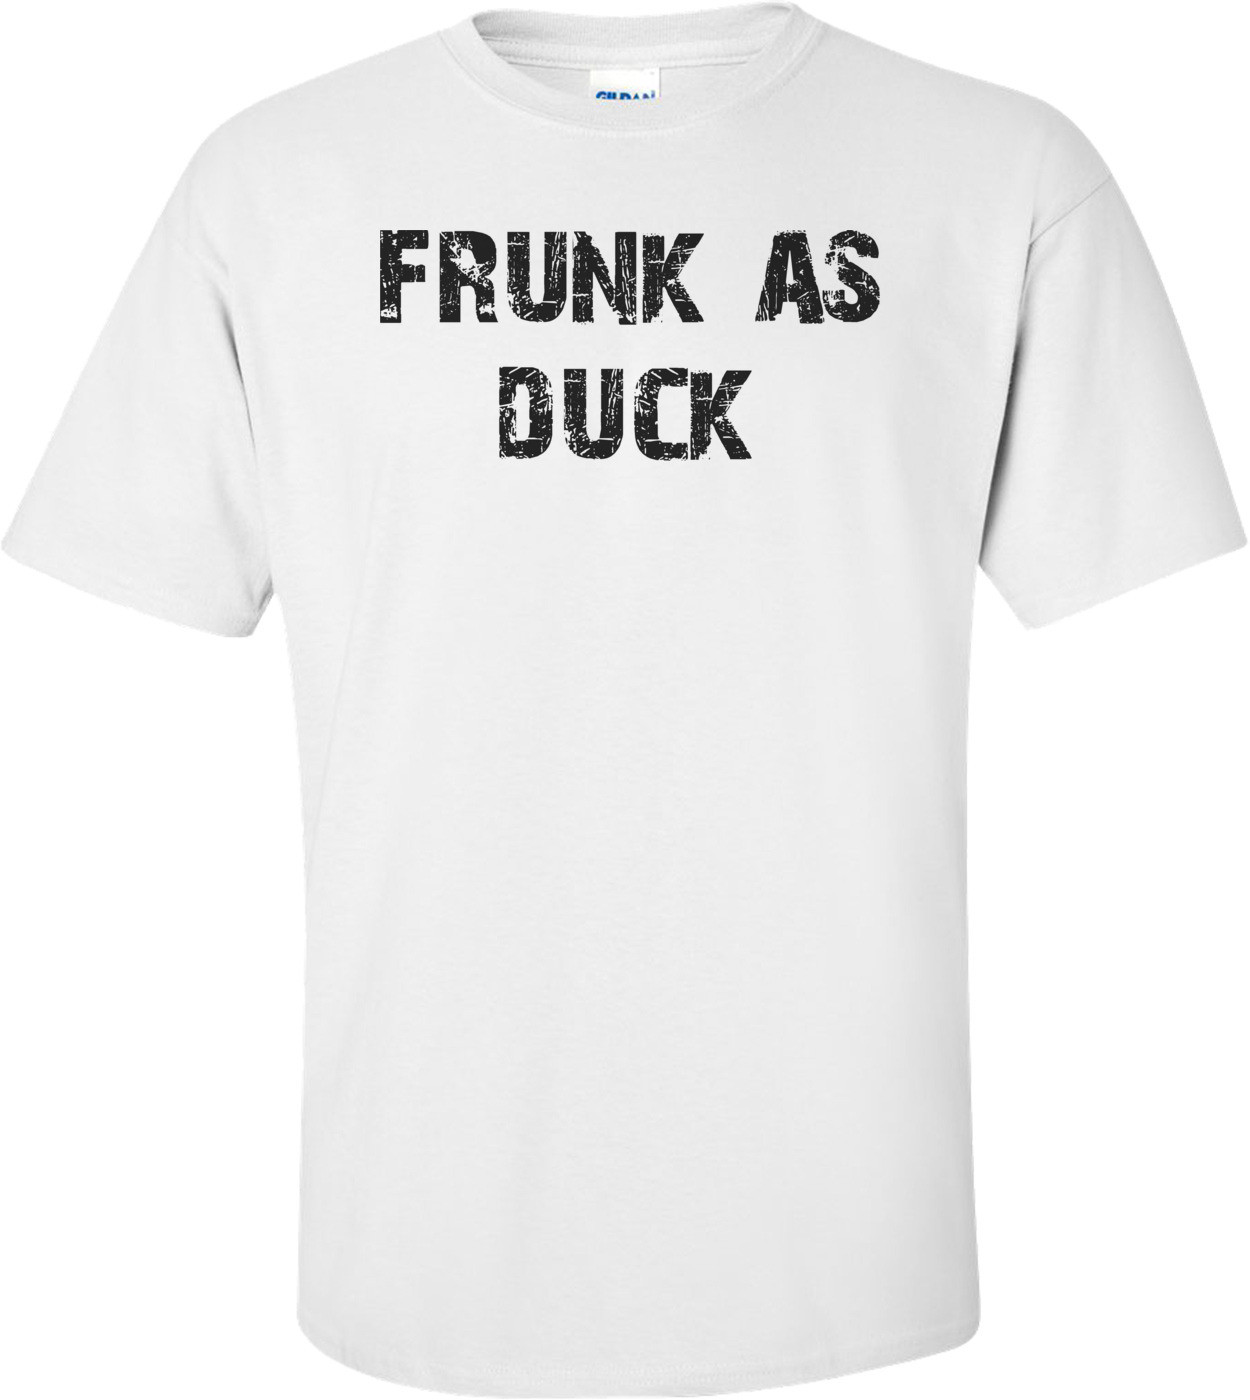 frunk as duck Shirt